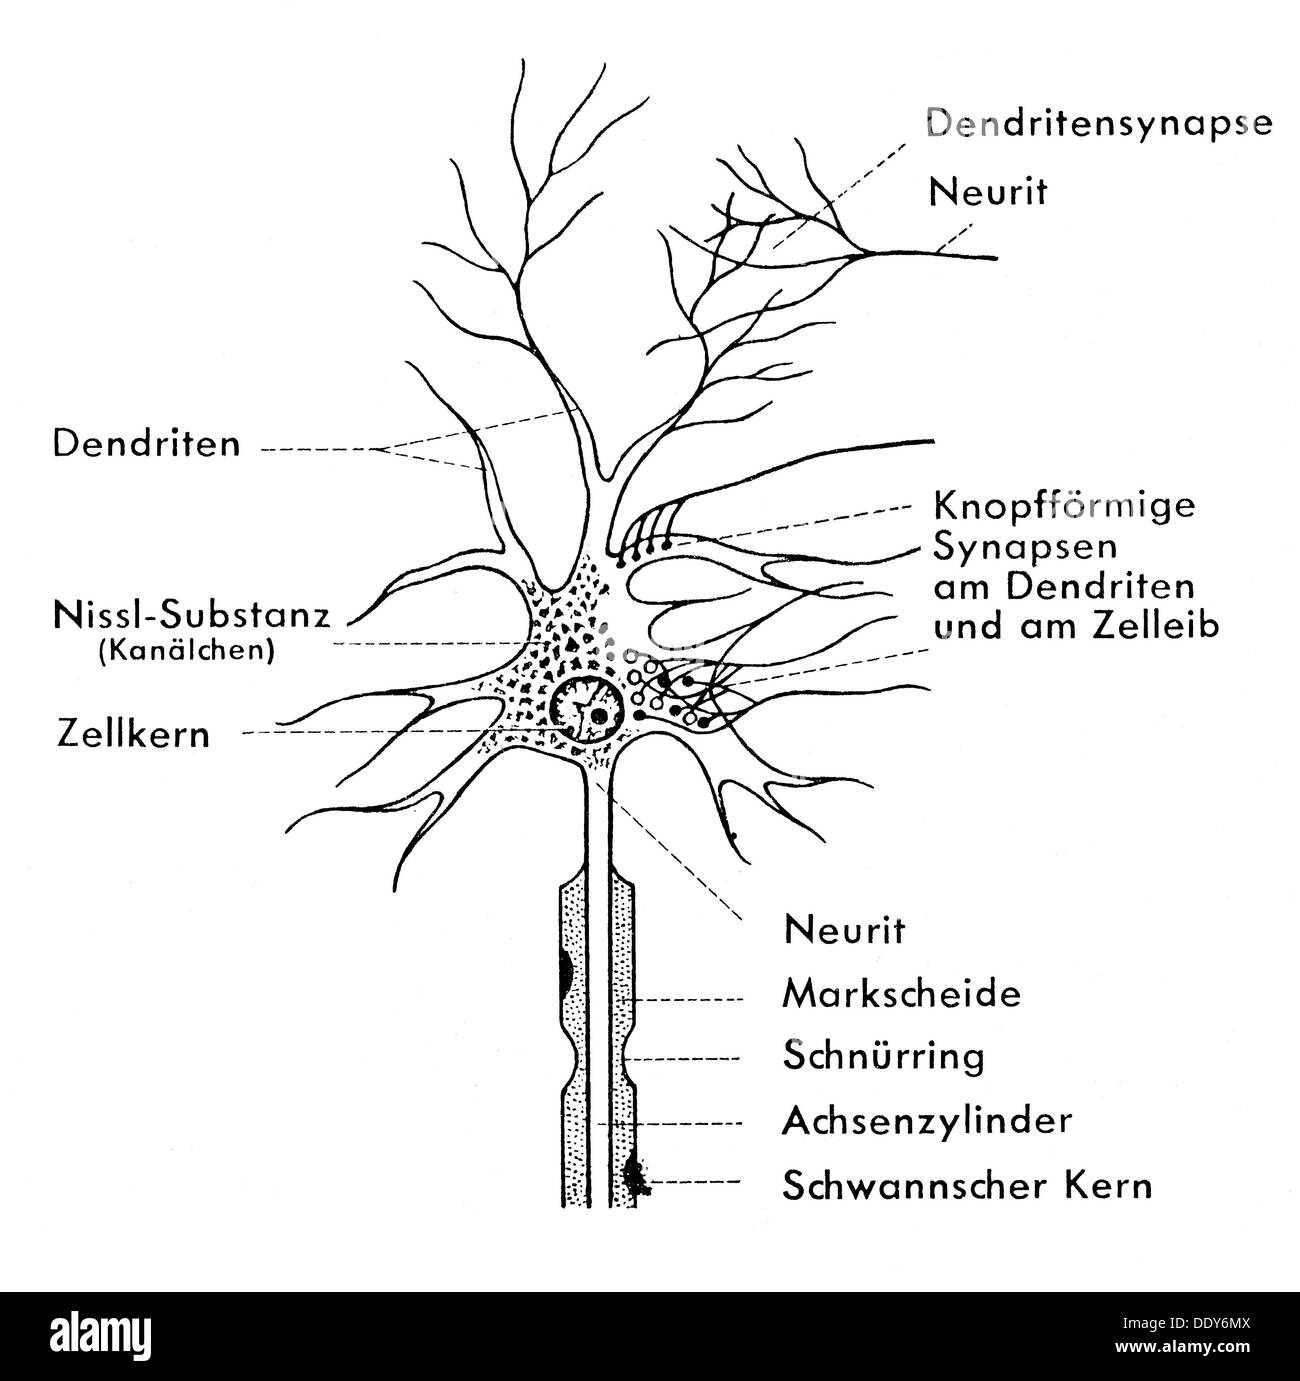 hight resolution of medicine anatomy nerve cell schematic diagram of a ganglion cell drawing 20th century 20th century graphic graphics neural neuritic nerve pathway